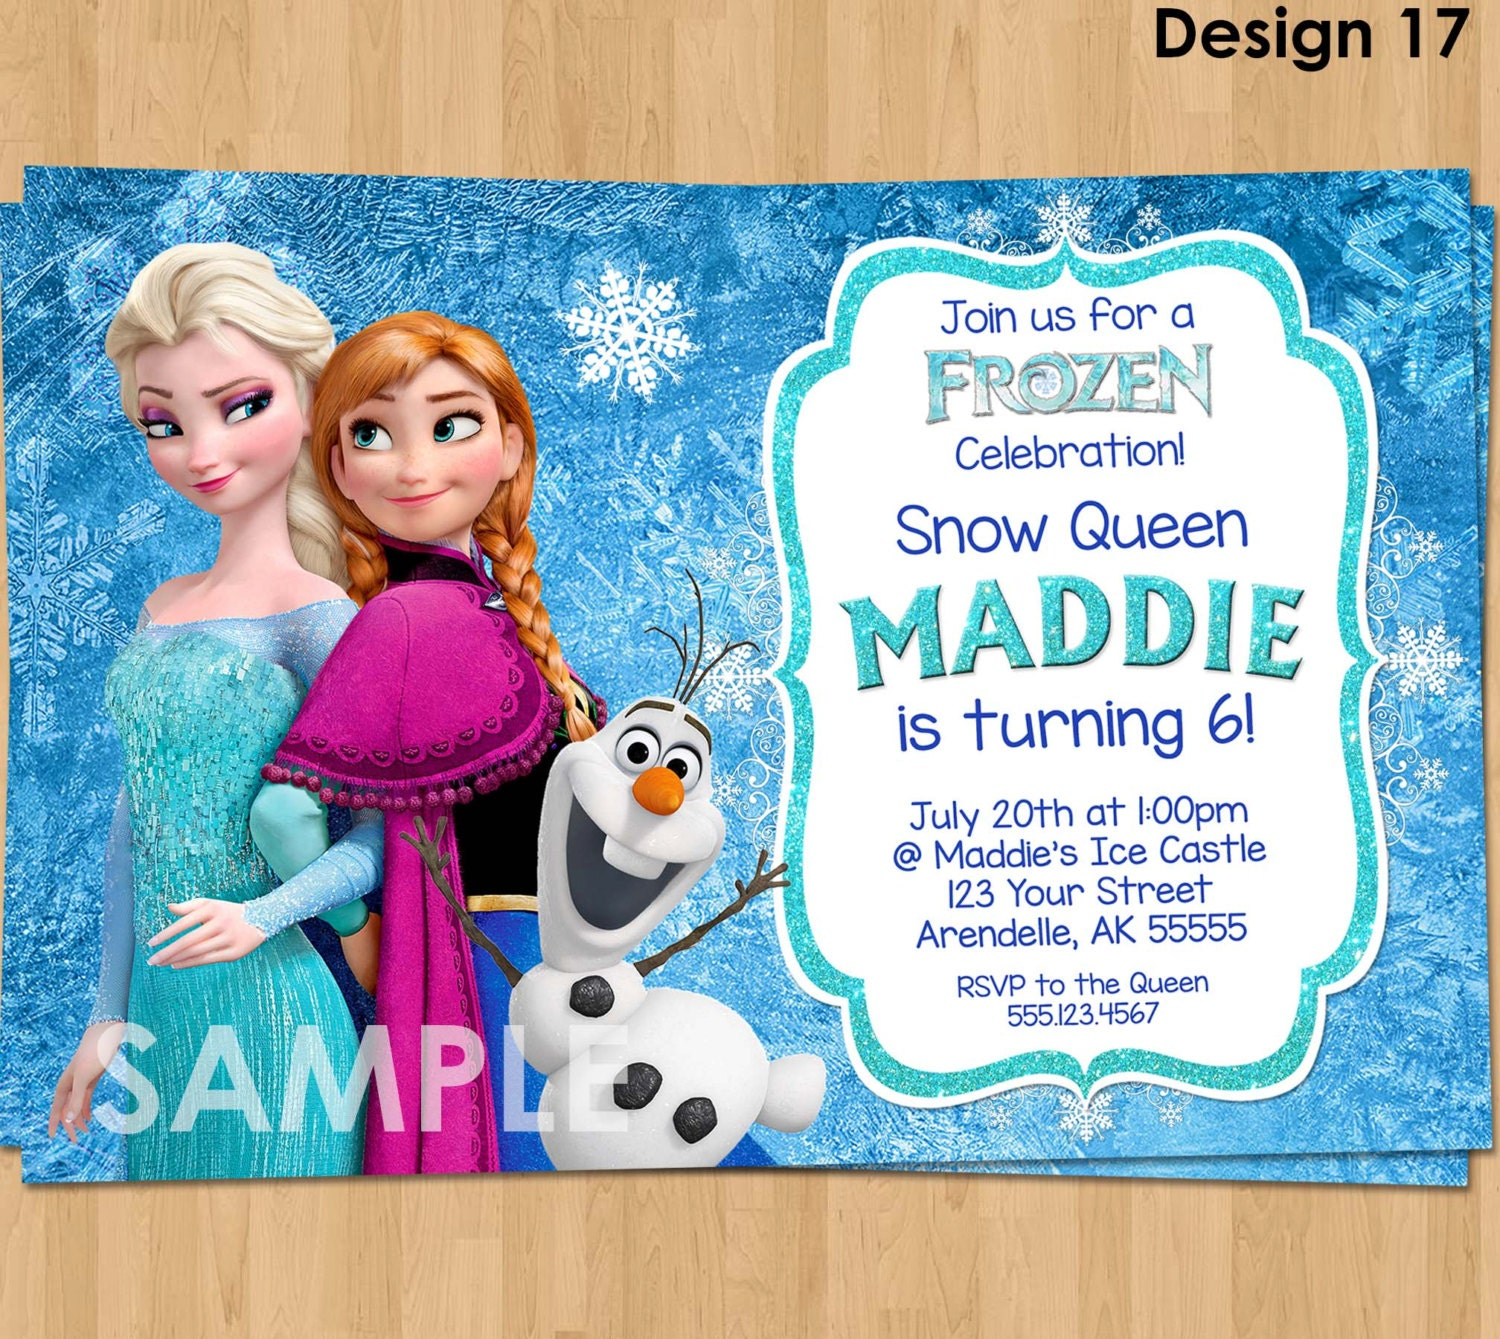 Frozen Invitation Frozen Birthday Invitation Disney Frozen - Birthday invitation frozen theme